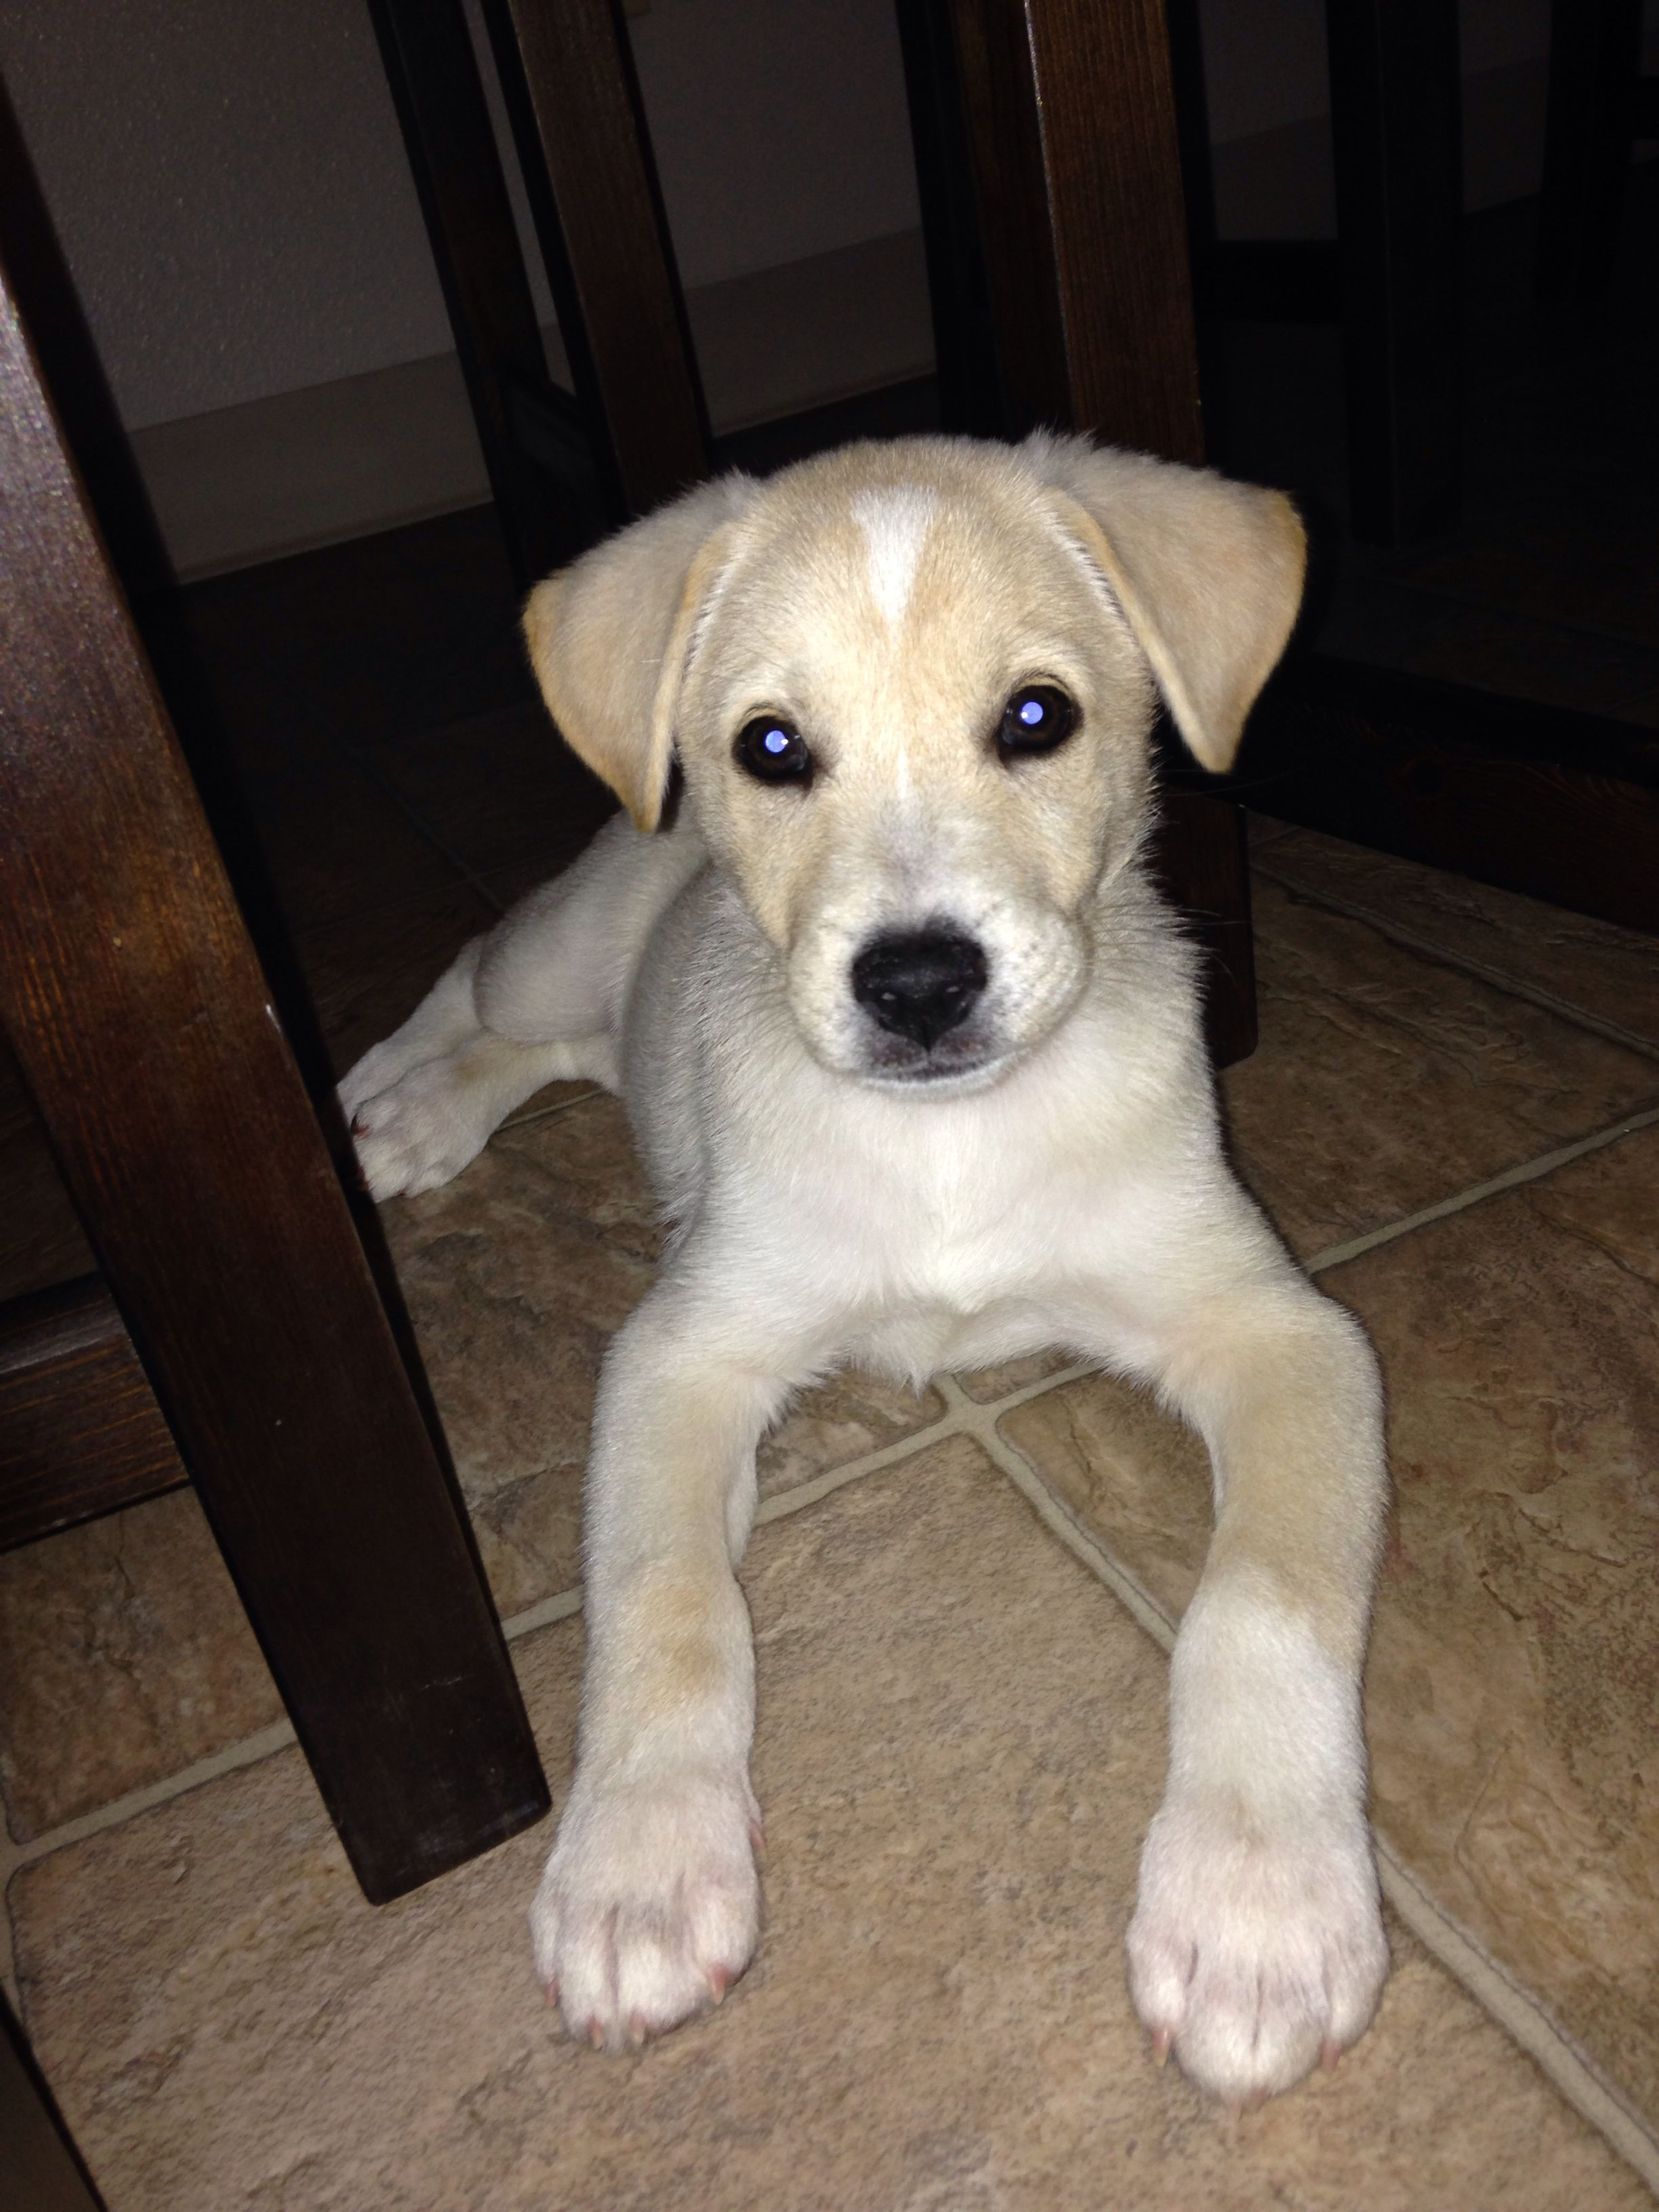 Shiba inu lab mix. (With images) Fluffy puppies